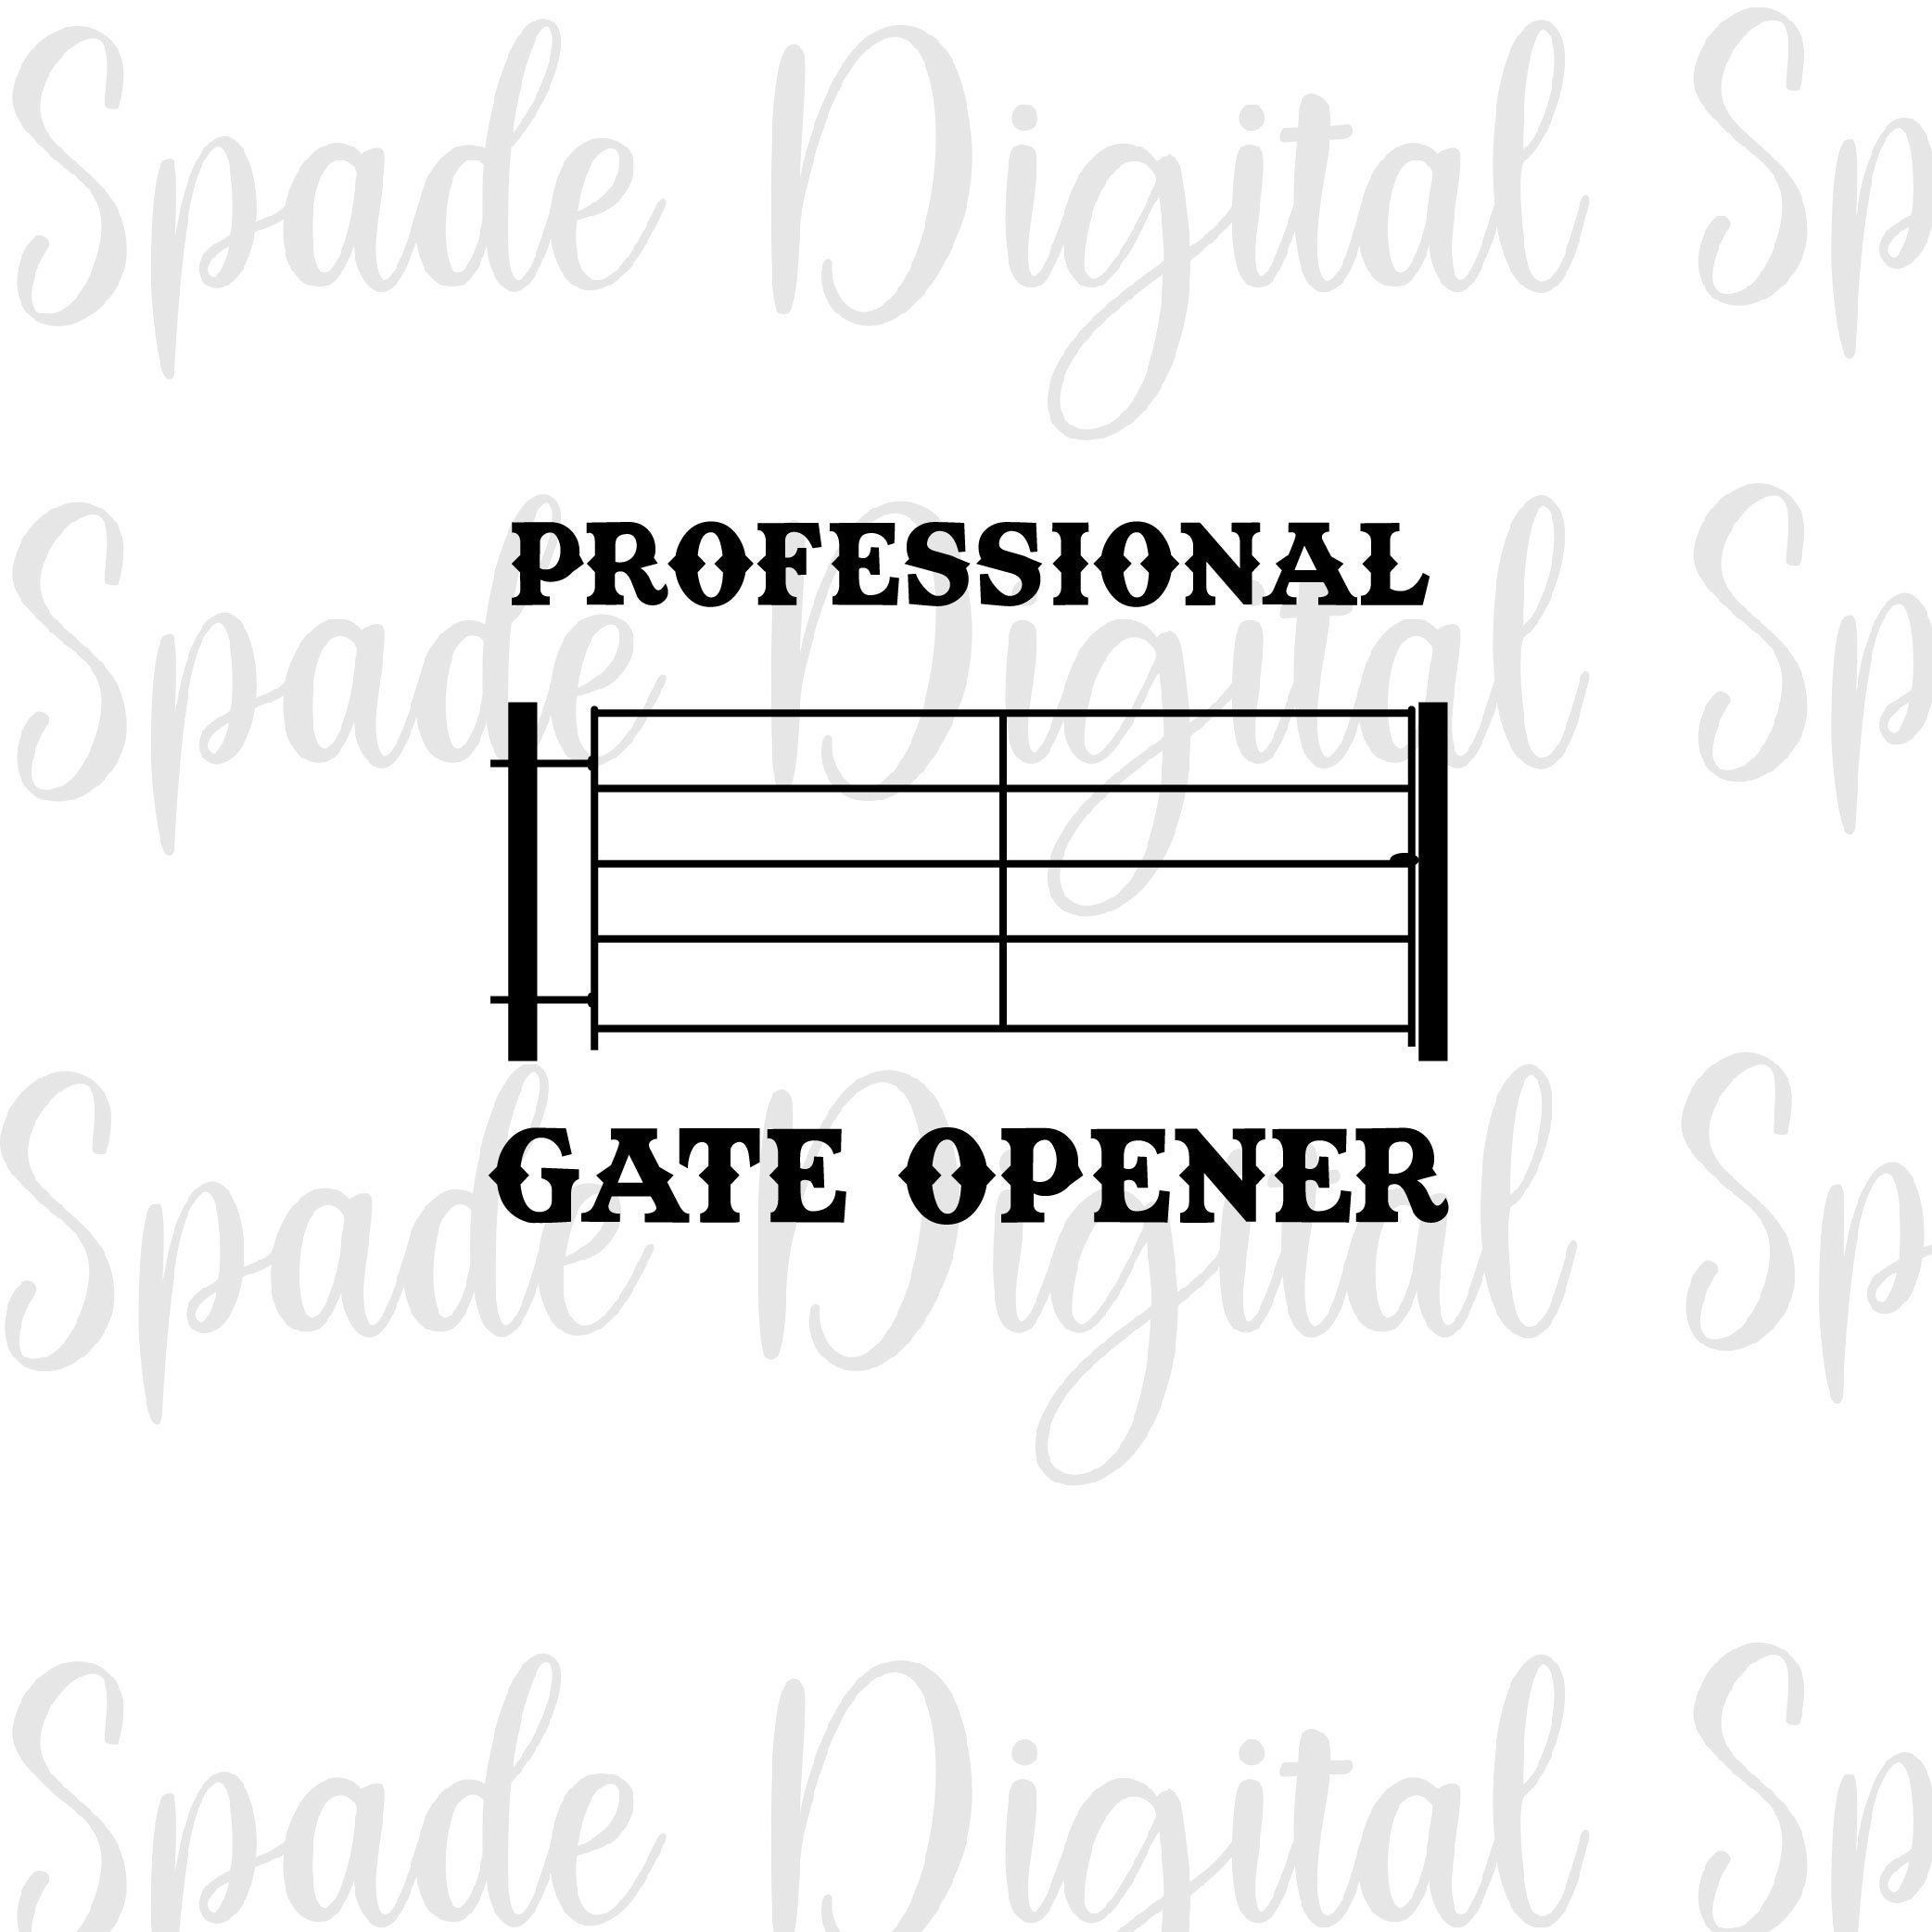 Professional Gate Opener, Country SVG, Professional Gate